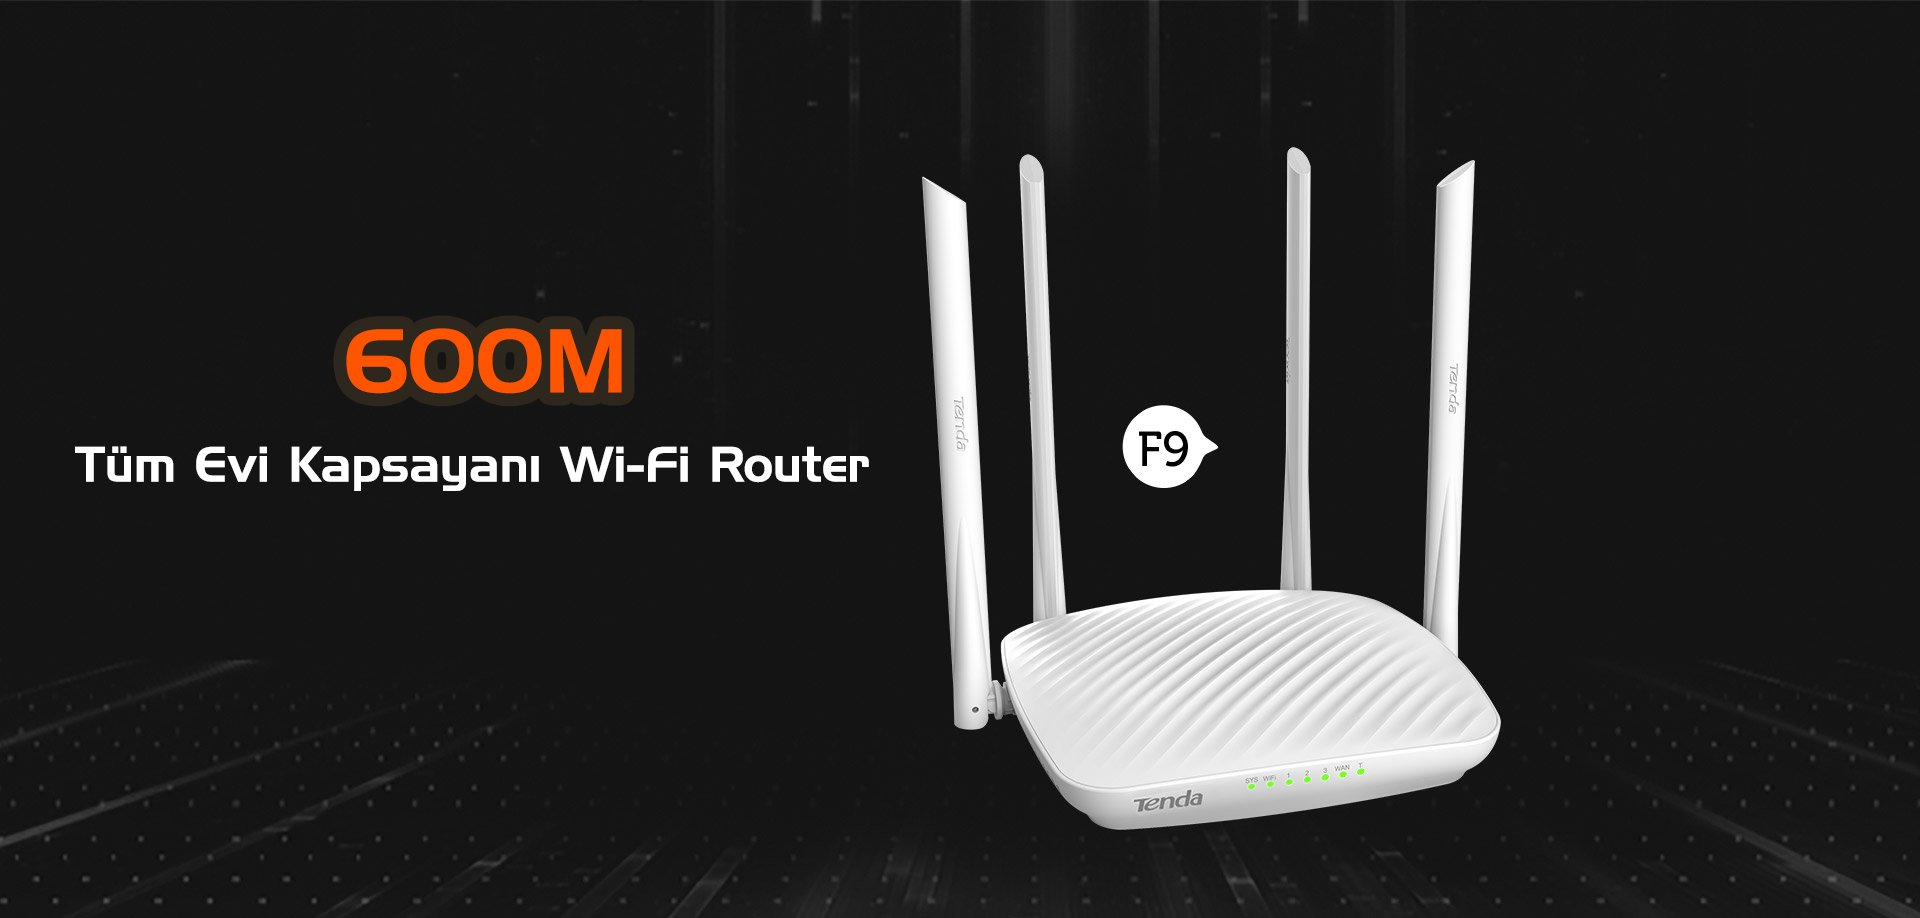 Tenda F9 600 Mbps Access Point - Router